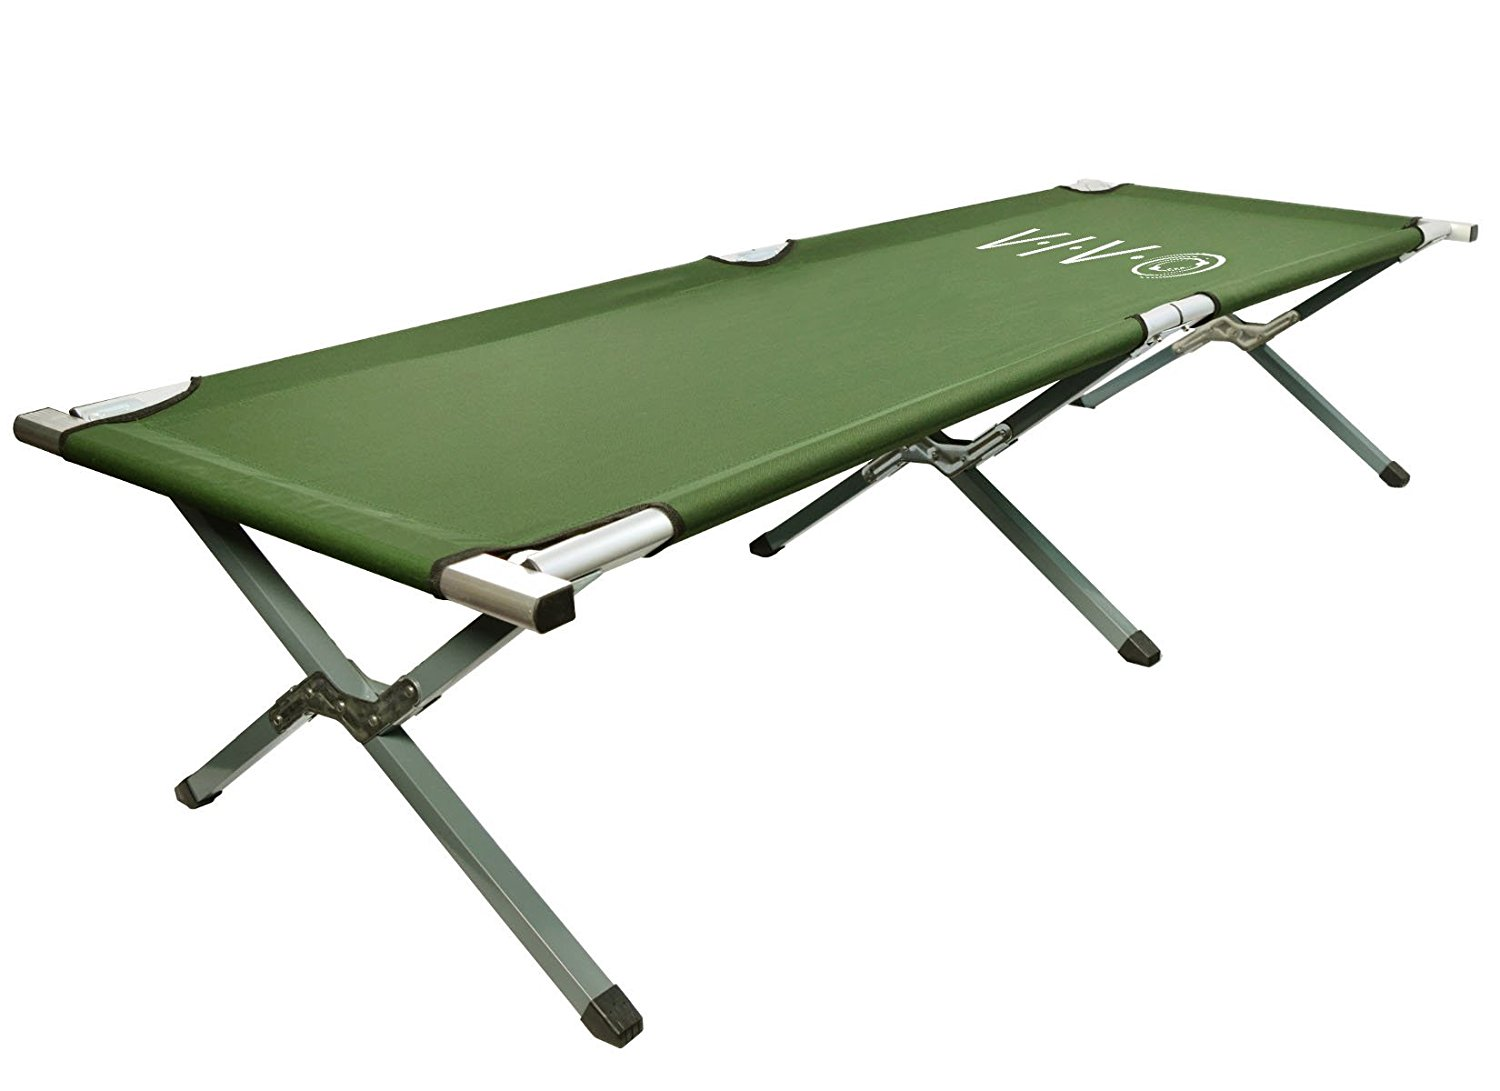 VIVO Cot, Fold up Bed, Folding, Portable for Camping, Military Style w/Bag